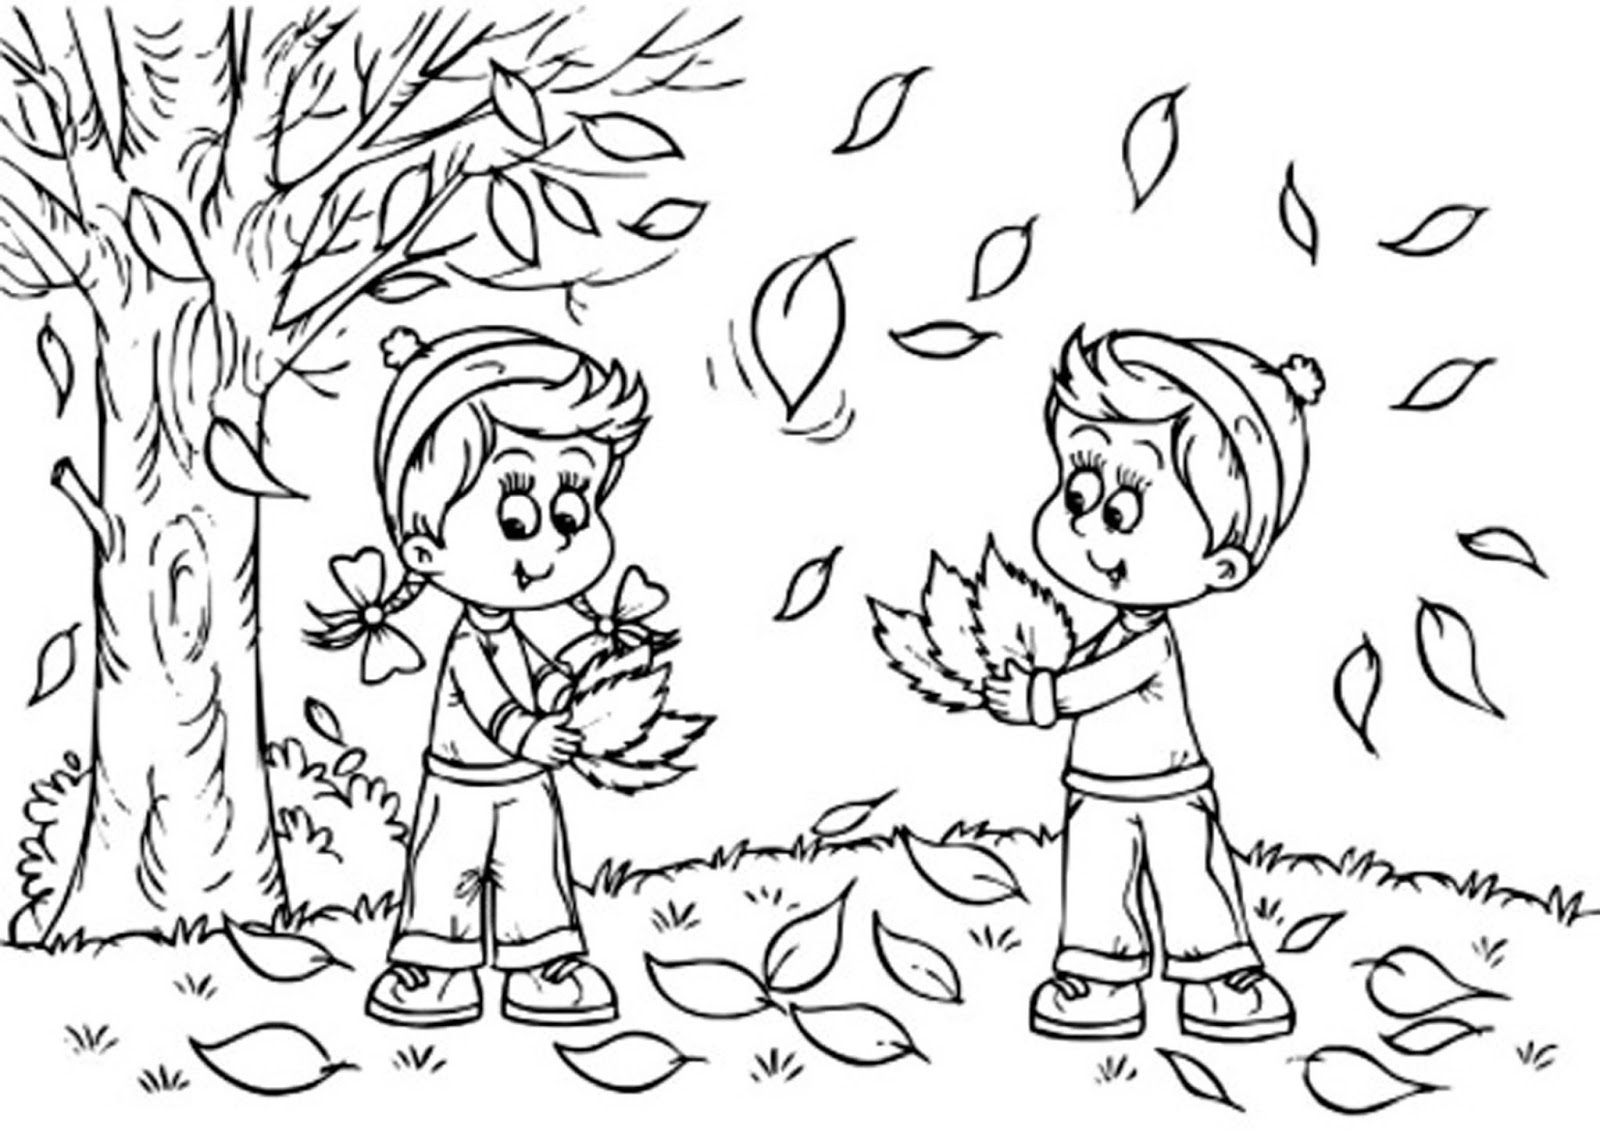 Coloring Pages For Autumn Season - Dheashintiapriliani - Free Printable Coloring Pages Fall Season